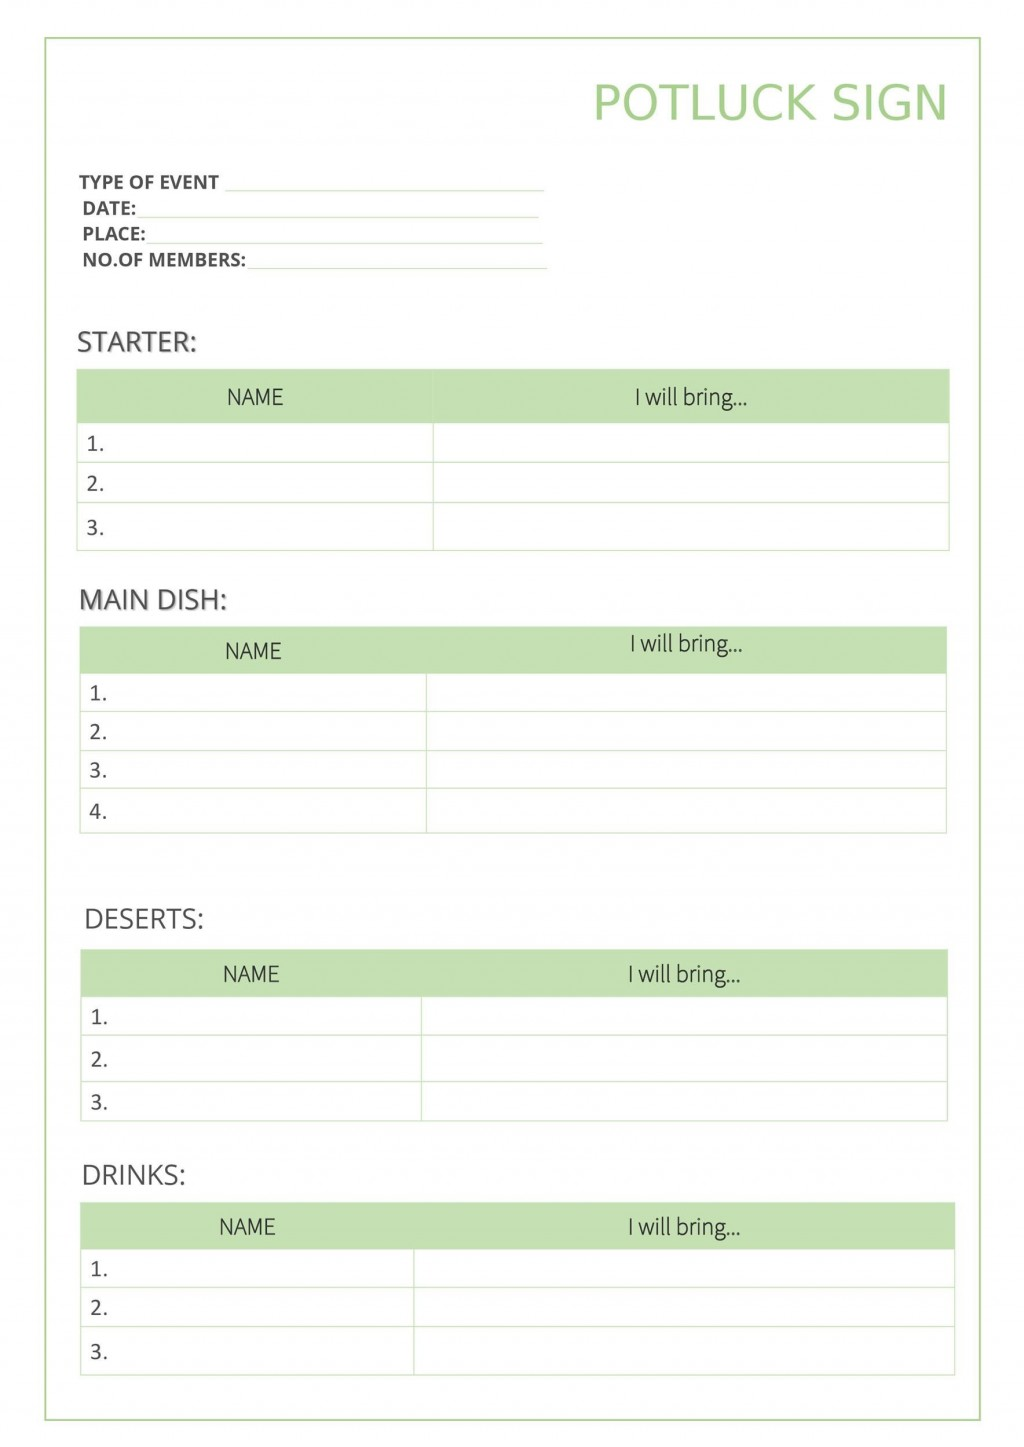 009 Outstanding Potluck Signup Sheet Template Word Photo  Microsoft Free Printable Sign UpLarge